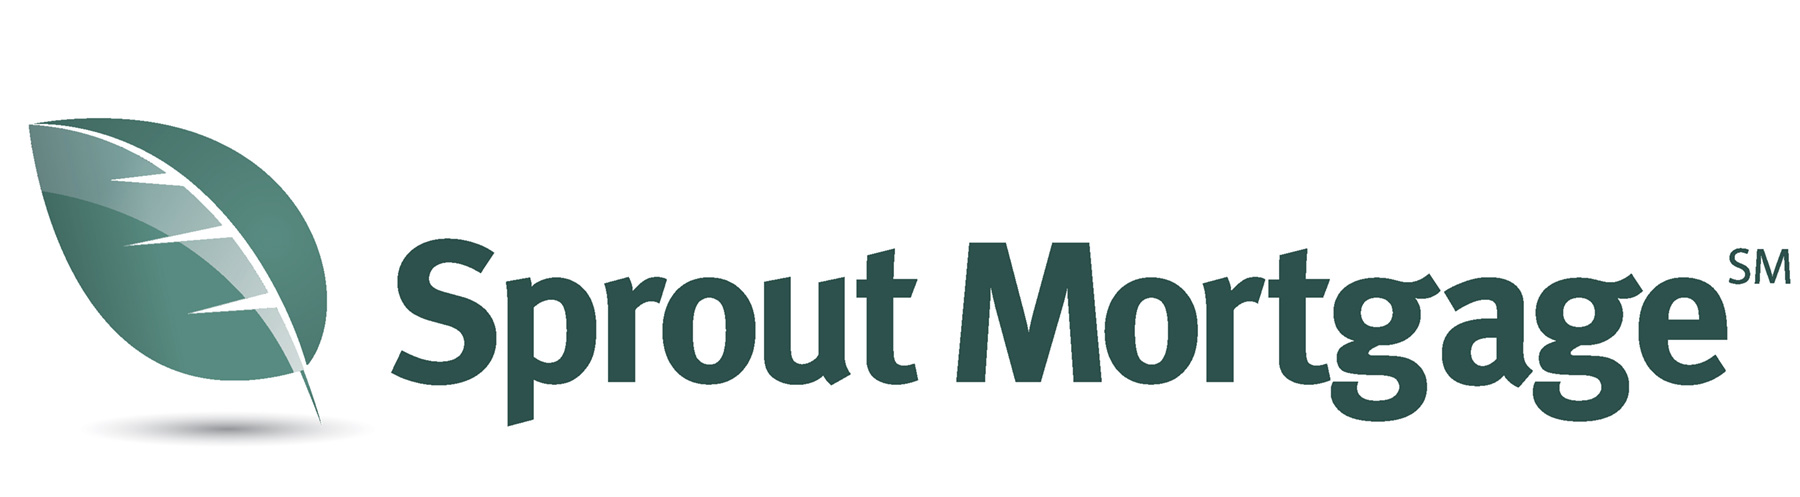 NEW_Sprout_Logo_SM_CMYK_2a5149